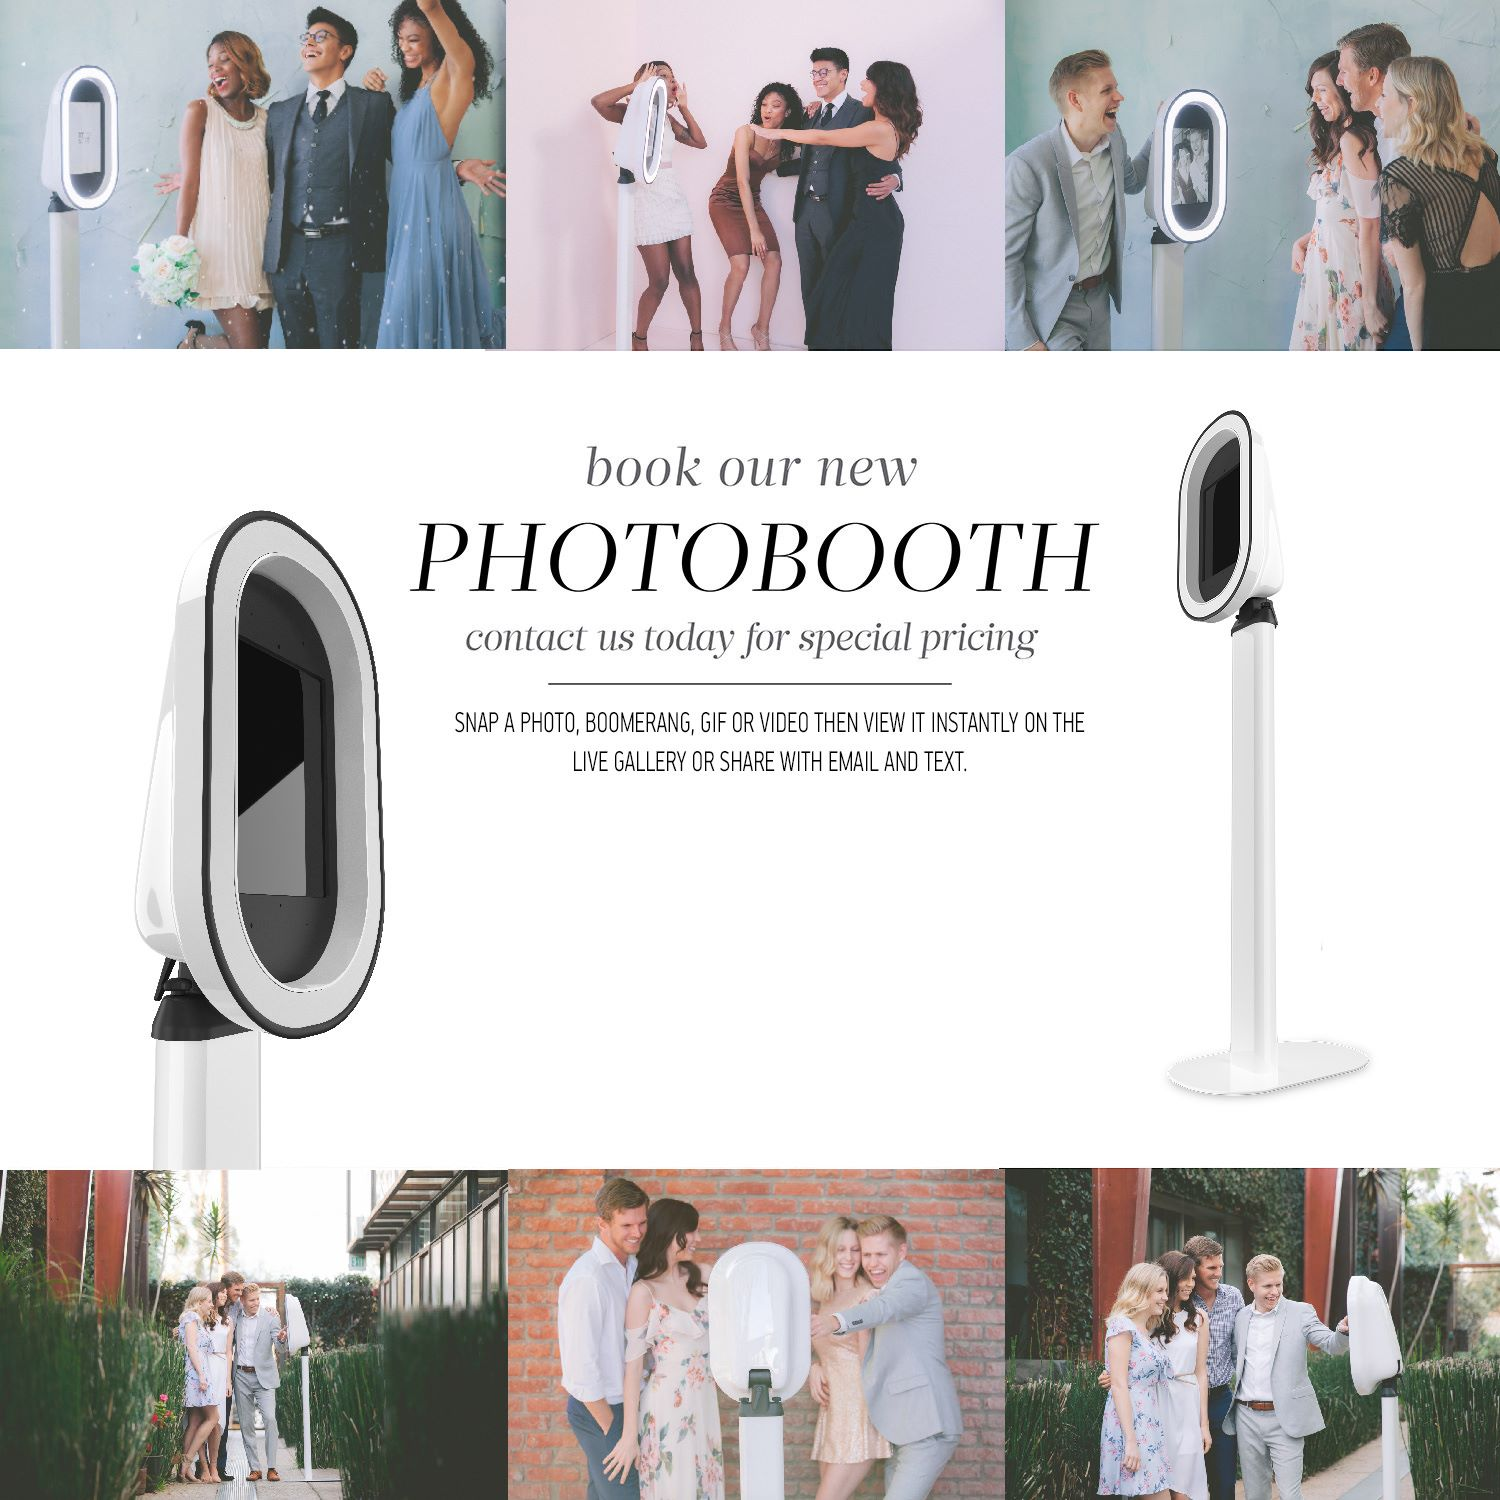 Fairy Godmother Photobooth rental for you next wedding or event in Bakersfield